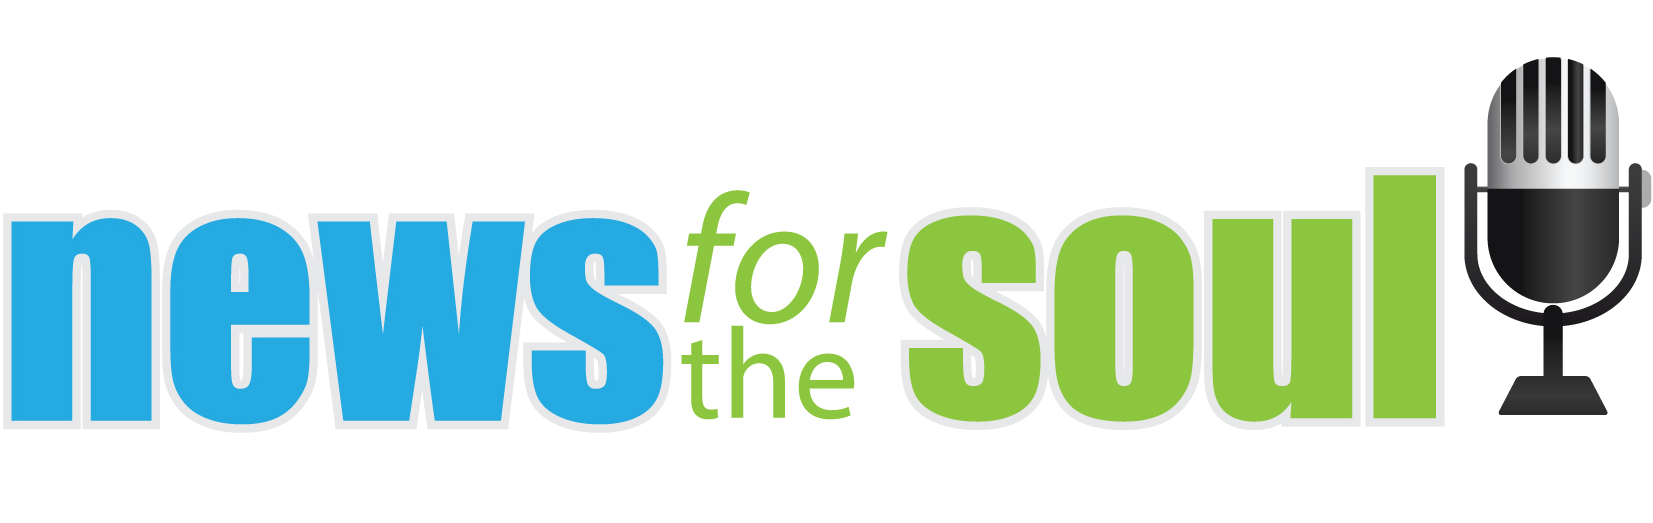 news for the soul logo - PODCASTS